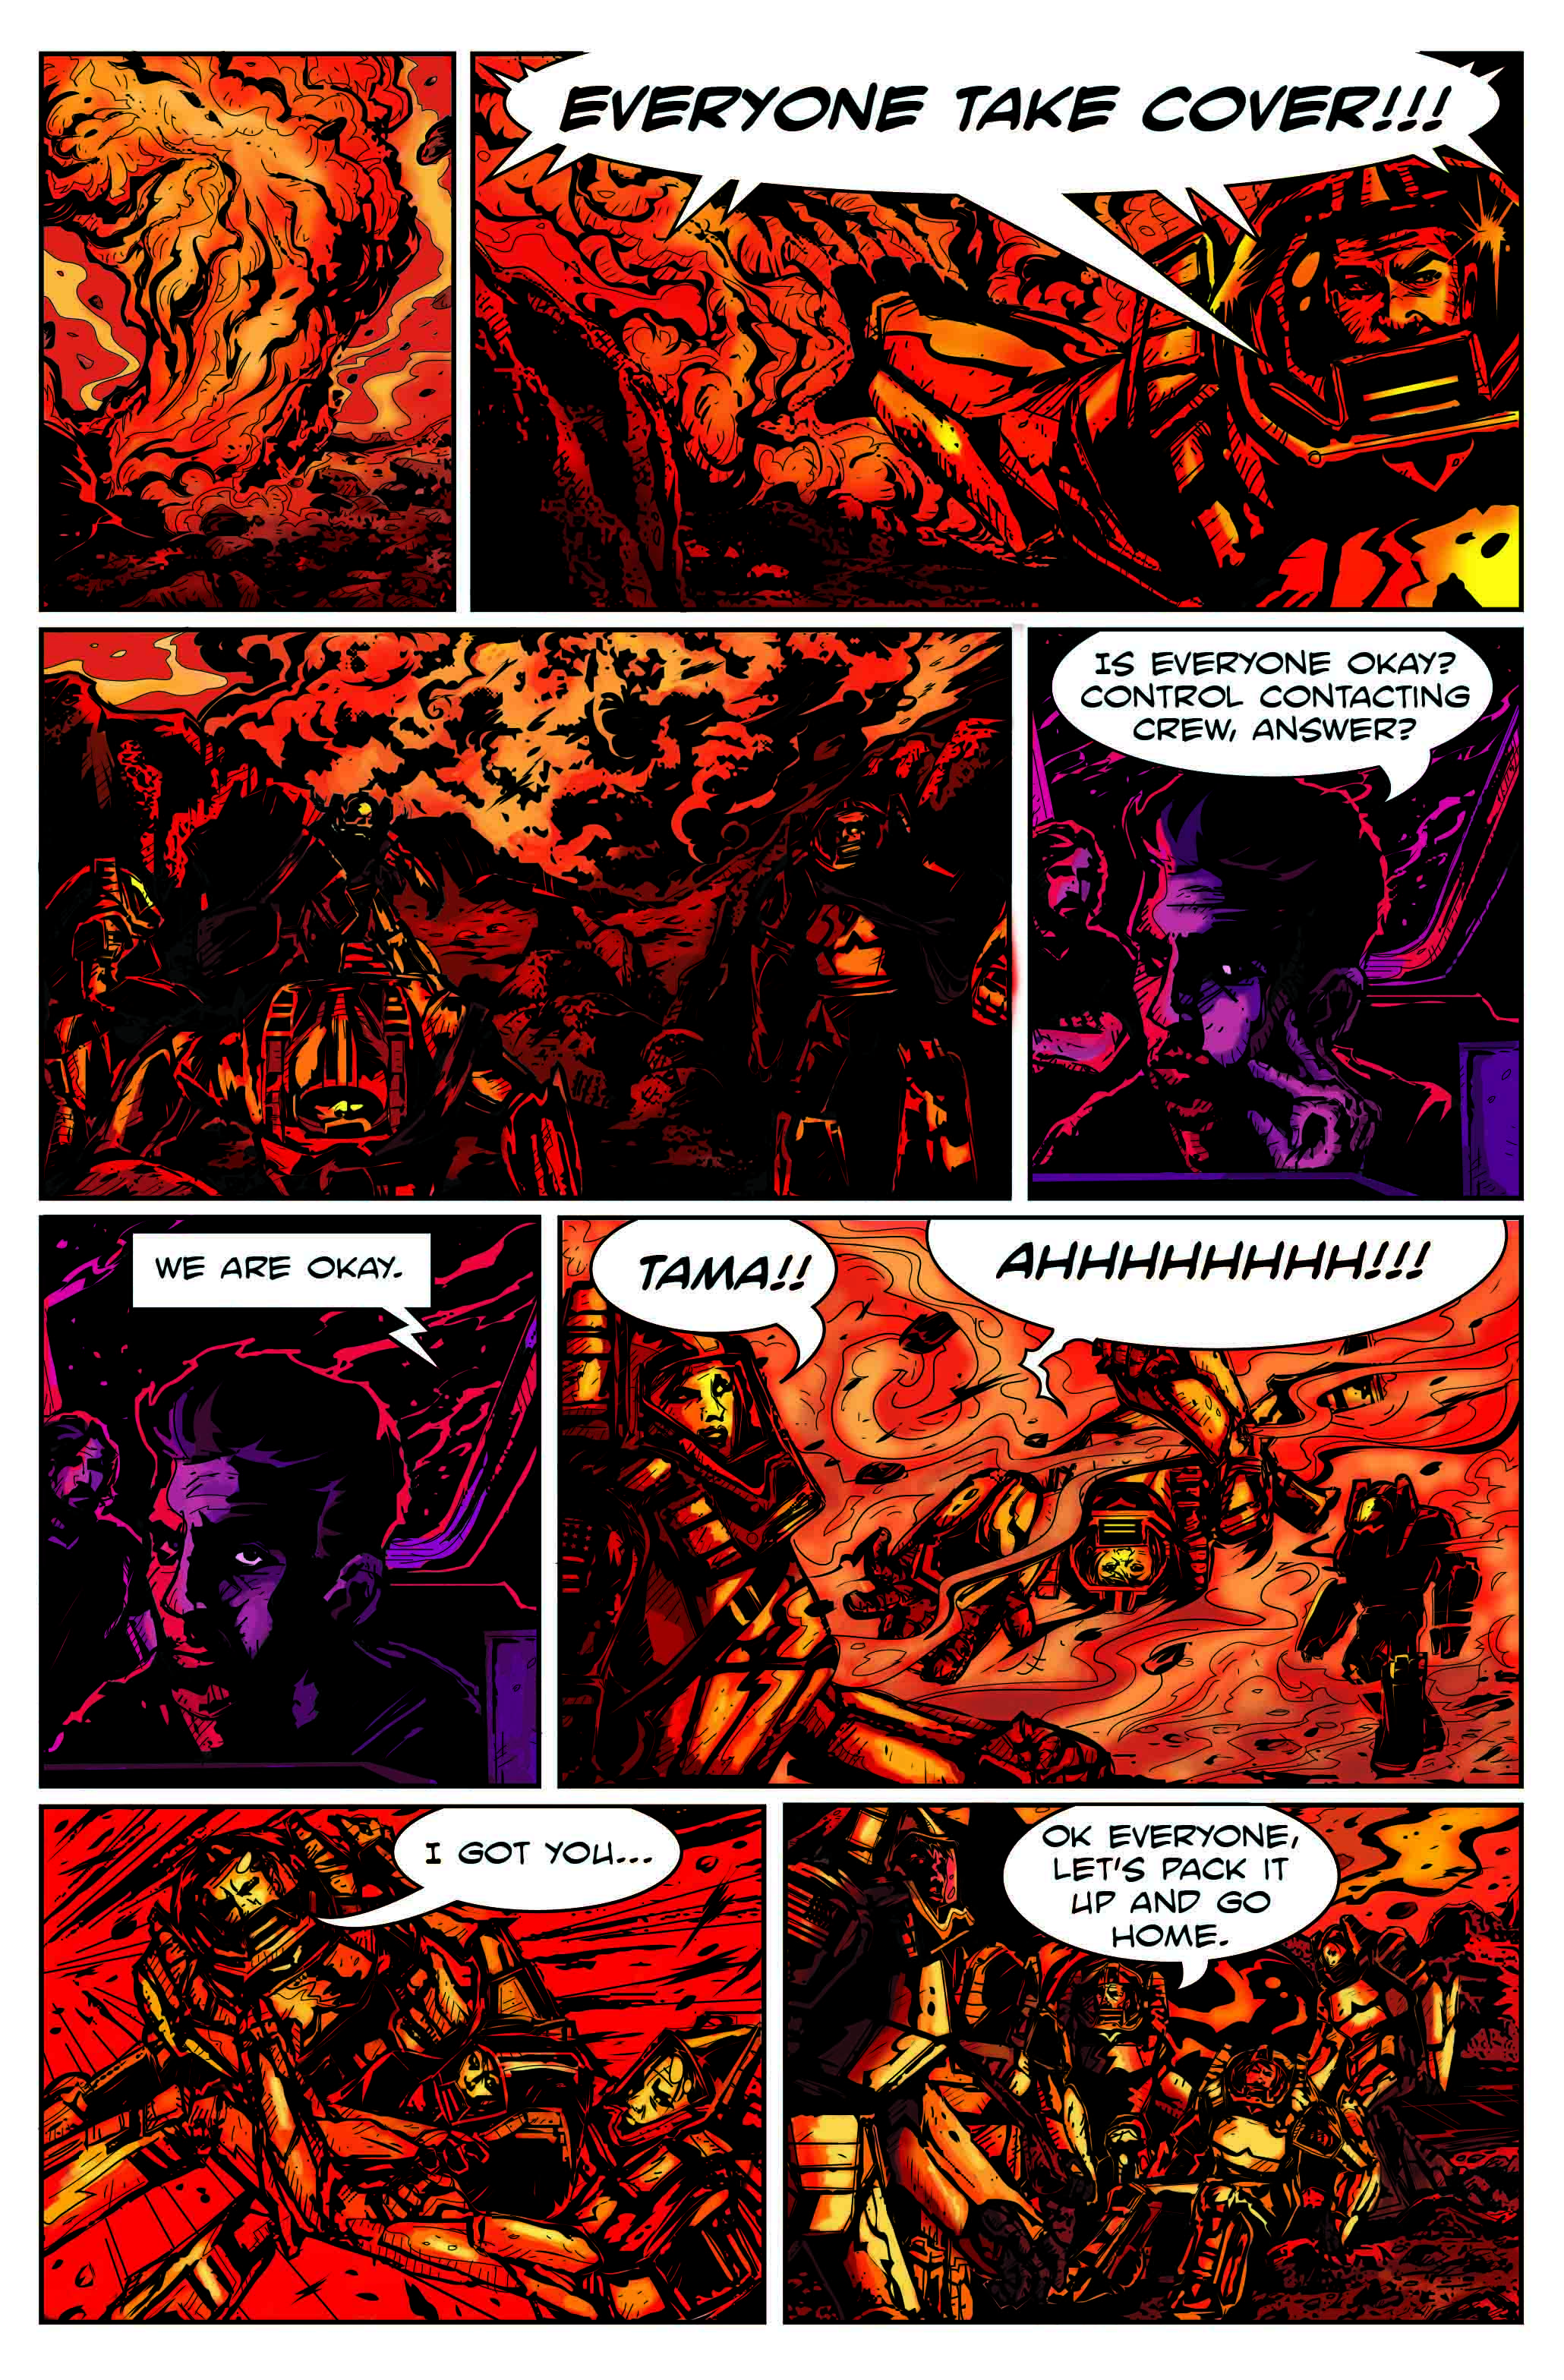 Code Name Talamh Issue 1 Remix-Page 7